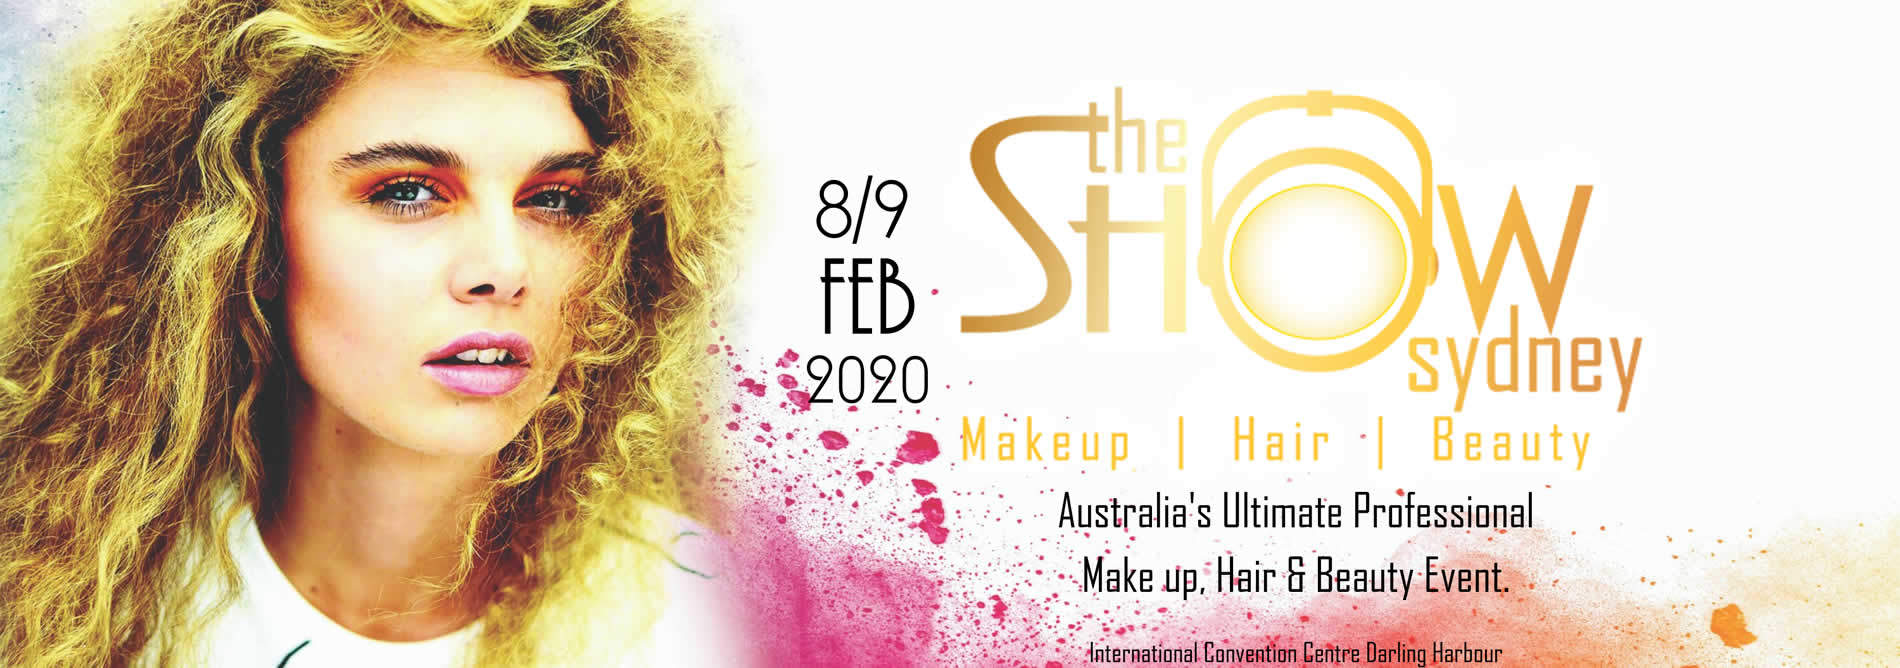 Hair Show 2020.What Is The Show Expo The Show Sydney 8 9 February 2020